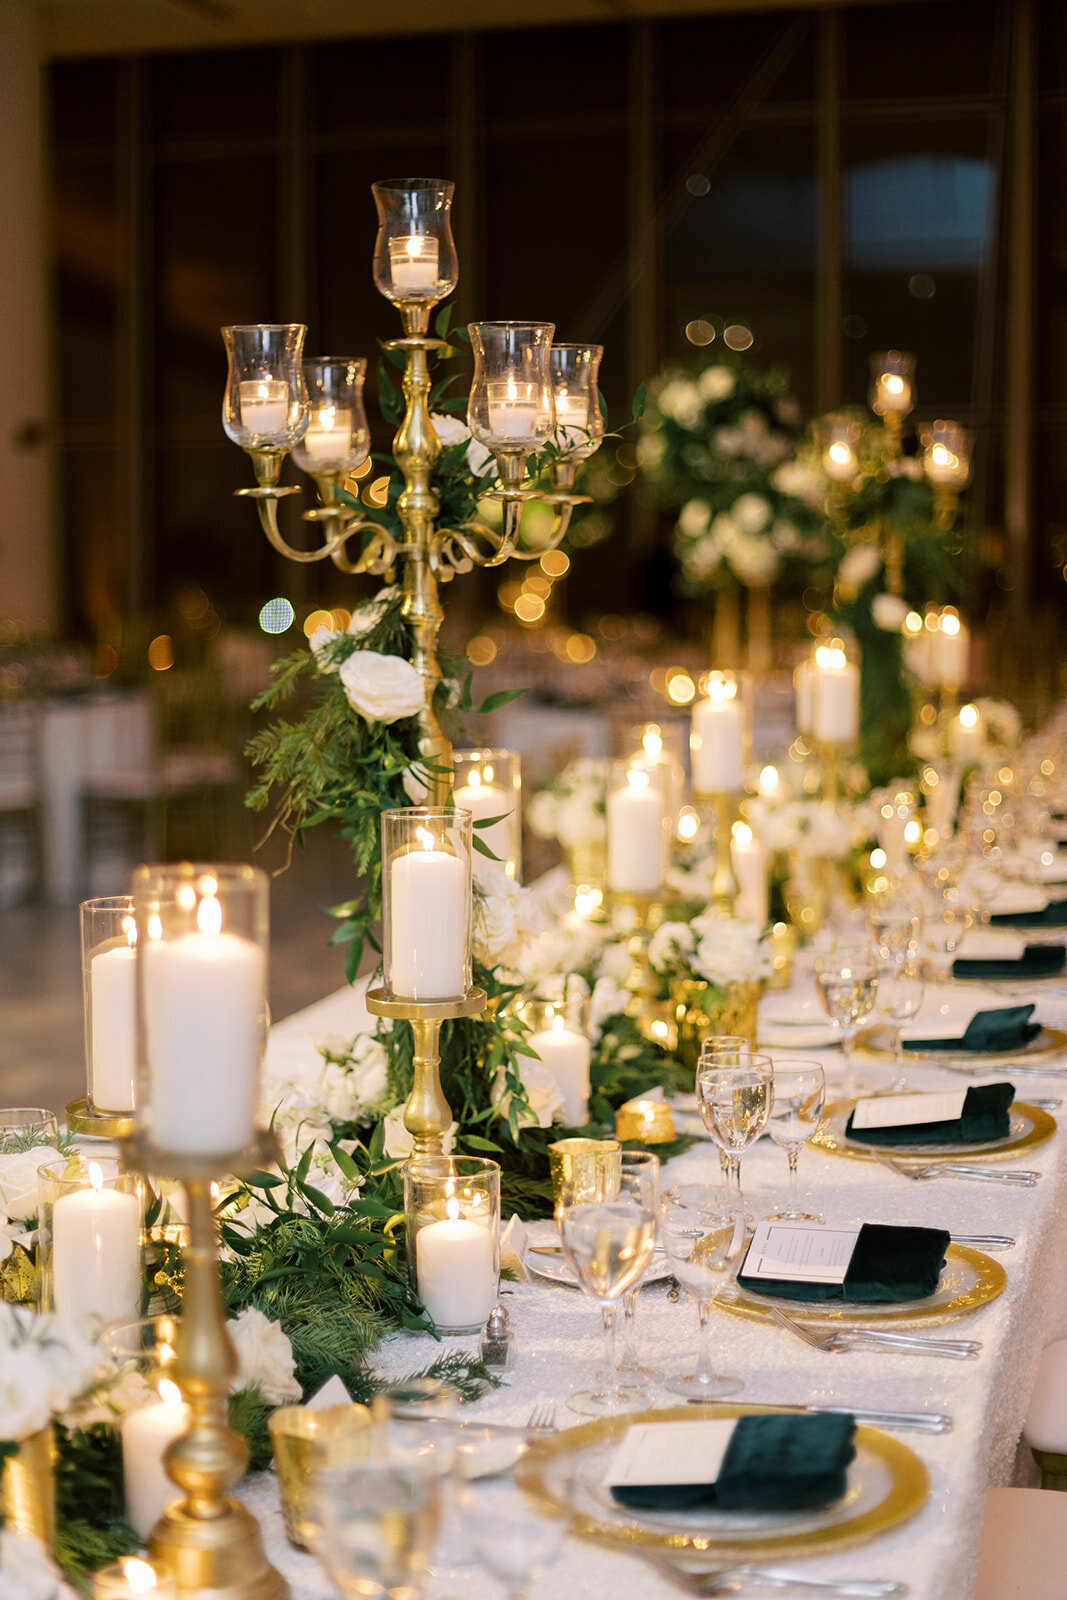 26-Venue-Six10-Wedding-garland-candleabra